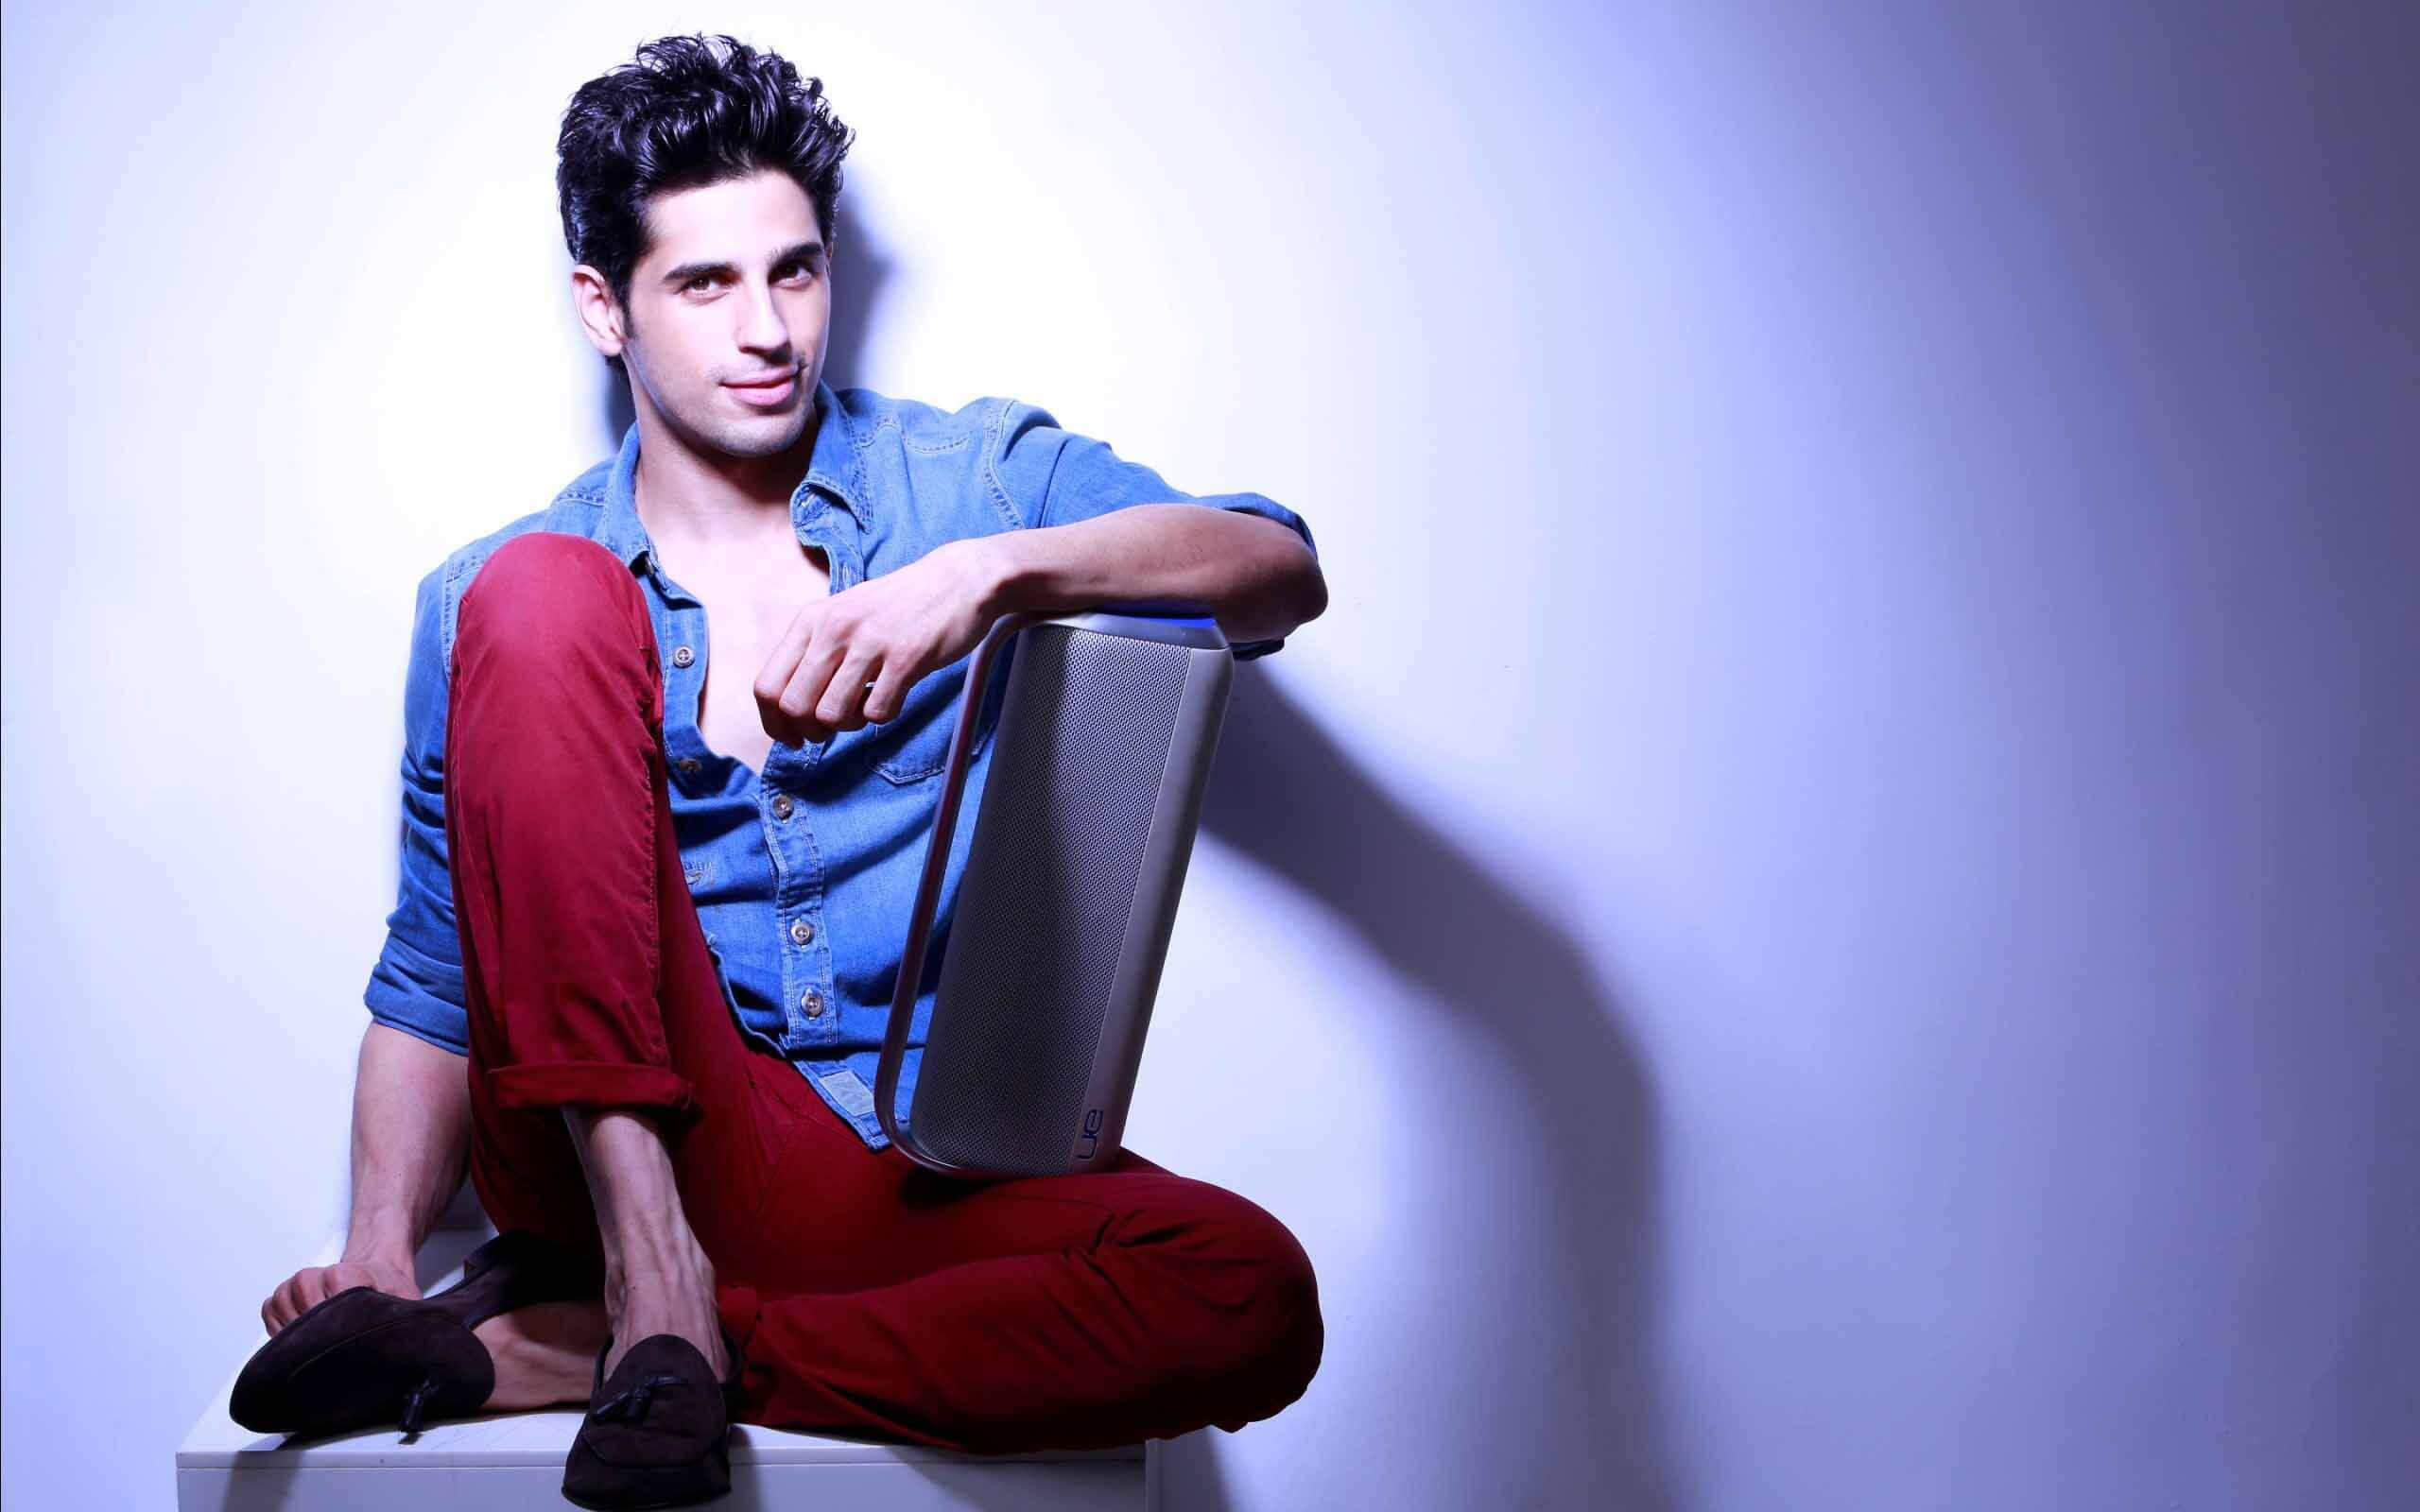 Sidharth Malhotra Movies, Height, Age, Photos, Birth Date, Biography, Girlfriend, Family, Hairstyle, Education, Details, Net Worth, Awards, Wiki, Instagram, Facebook, Imdb, Twitter (29)